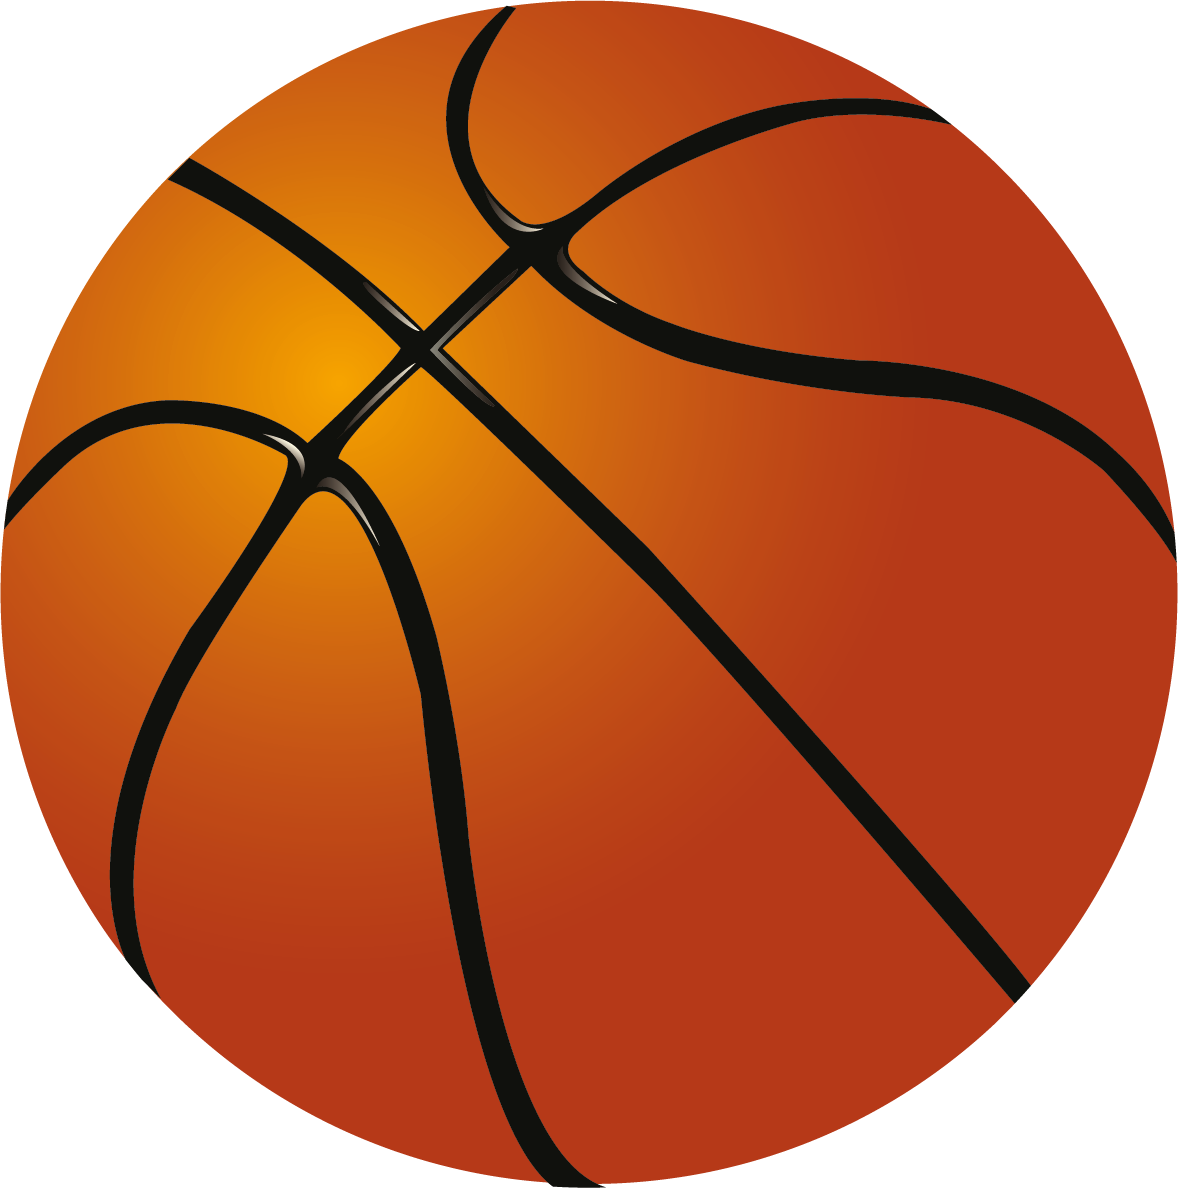 Jpeg basketball clipart black and white image ball - Buscar con Google | Niños | Pinterest | Basketball clipart ... image